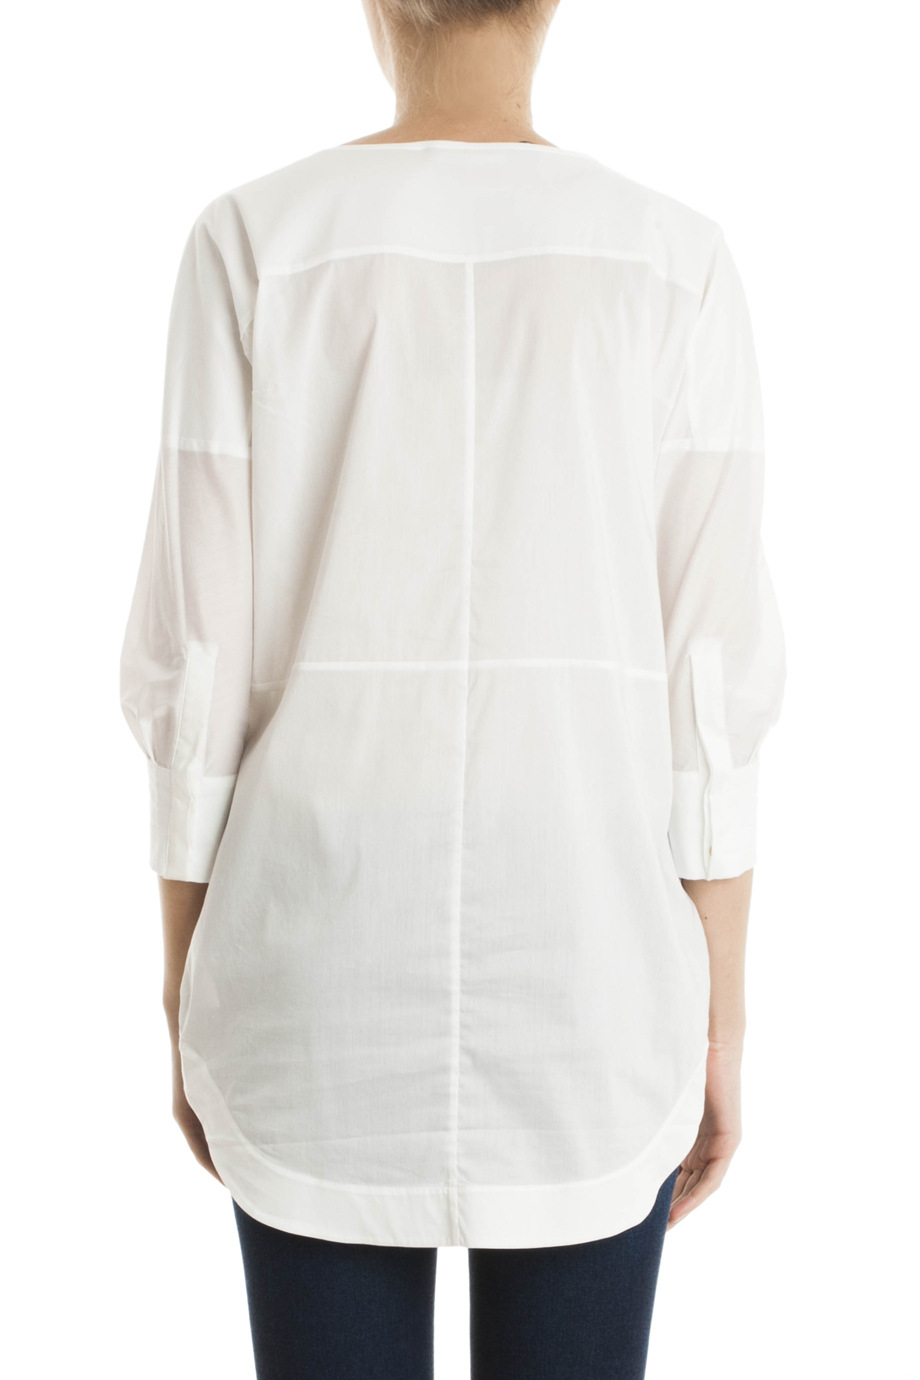 Lyst day birger et mikkelsen starch tunic in white for Starch on dress shirts